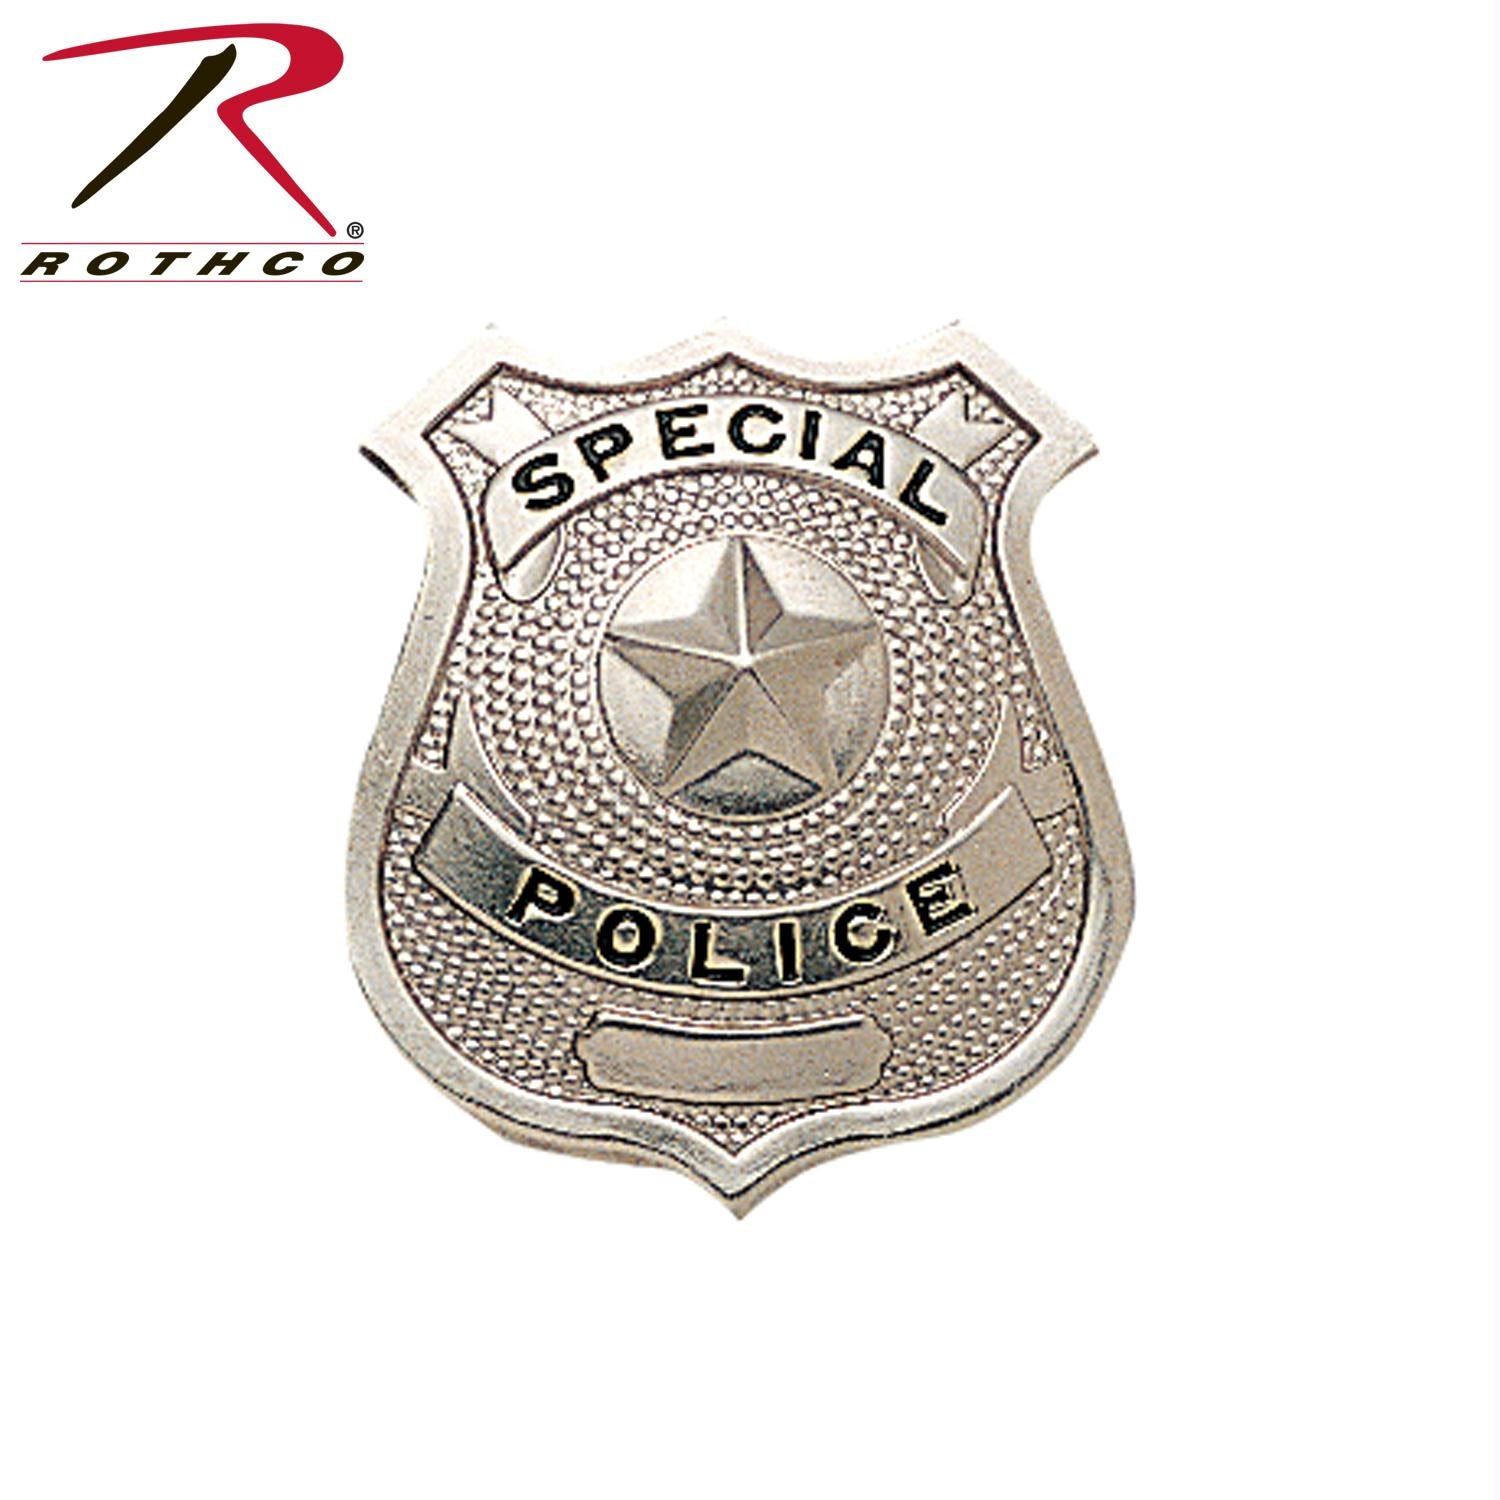 Rothco Special Police Badge - Silver